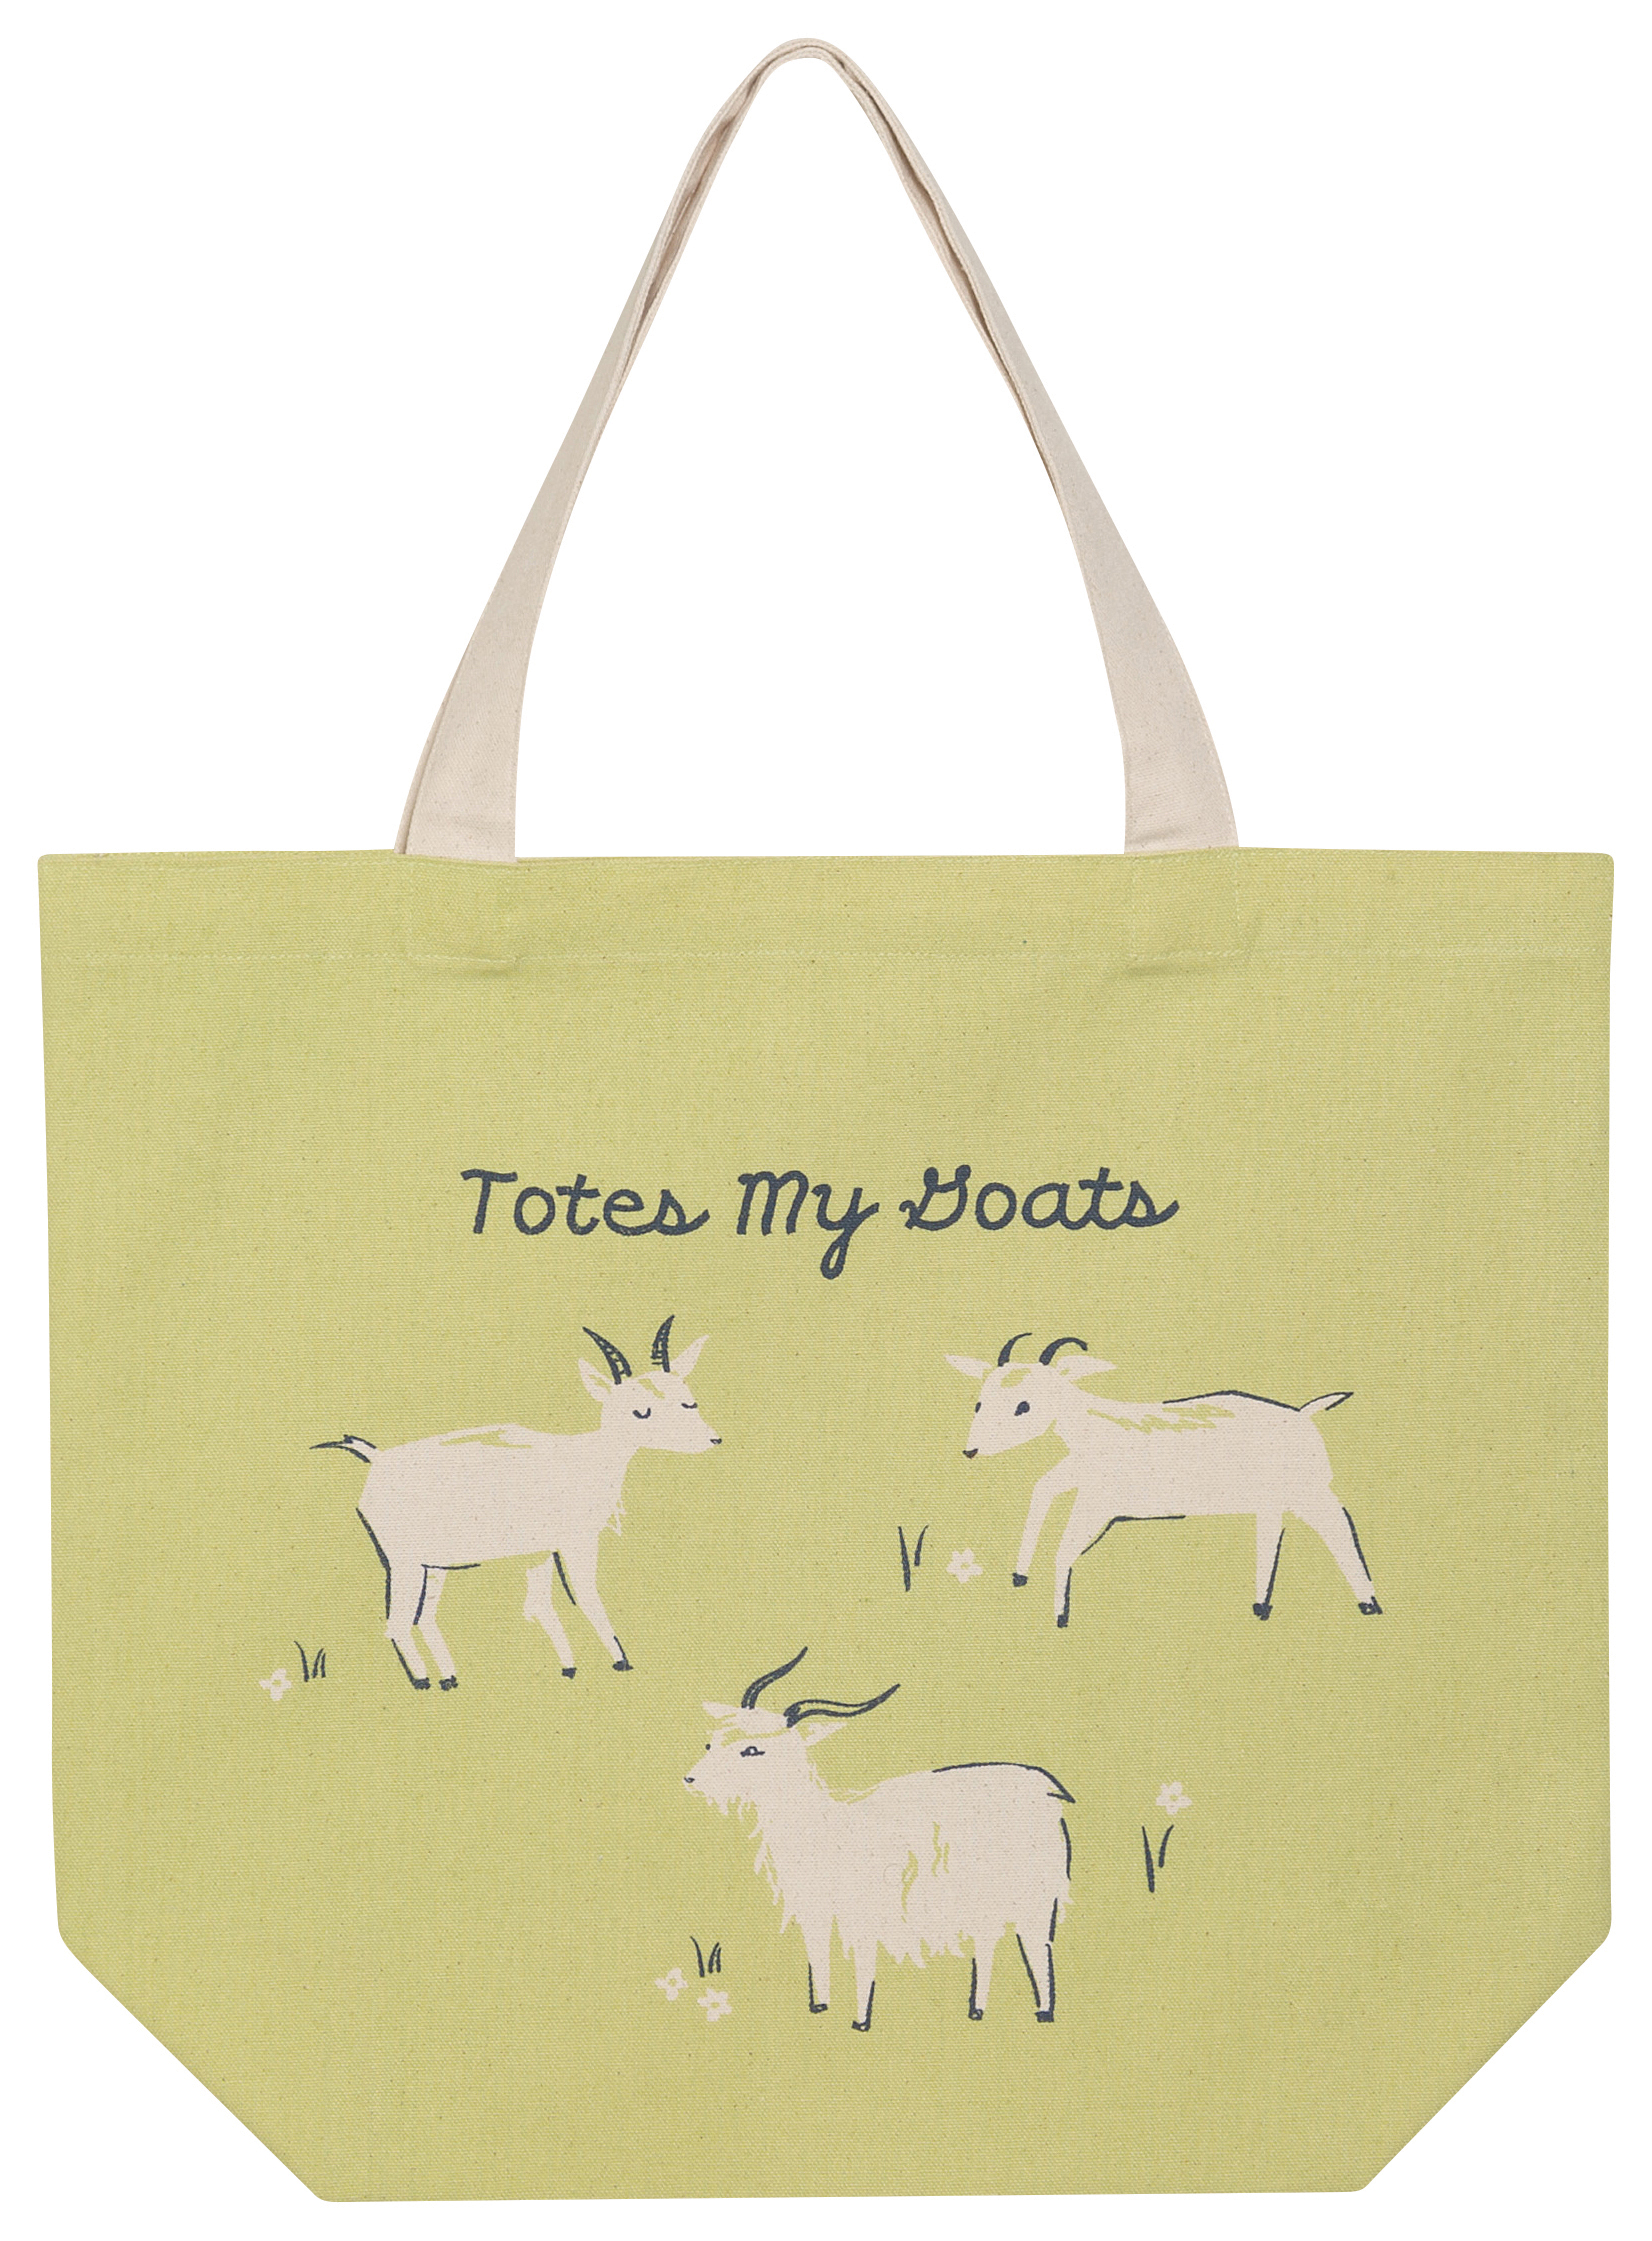 Tote Bag - Totes My Goats